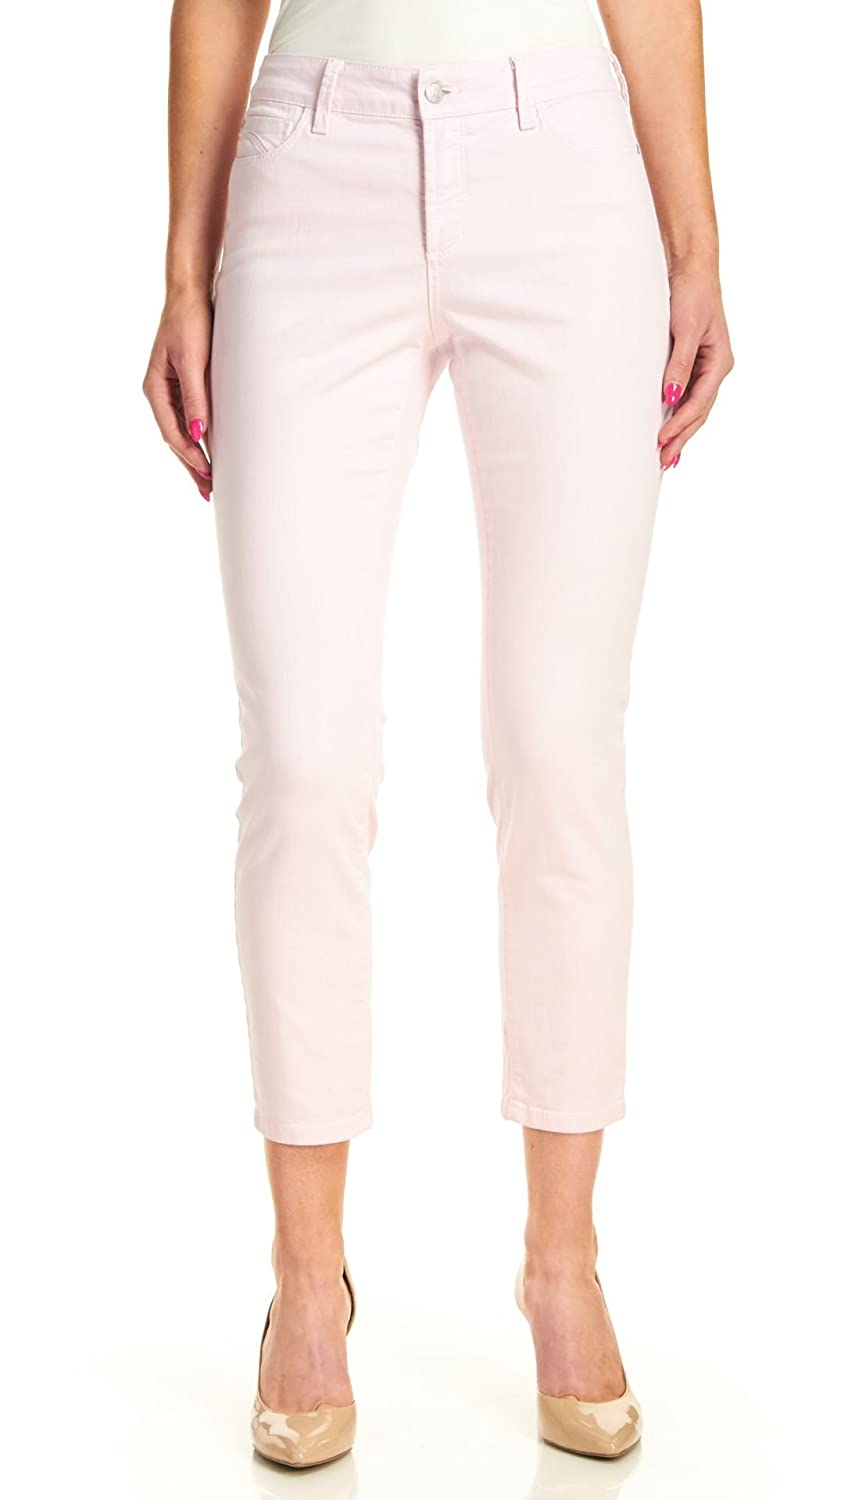 NYDJ Clarissa Skinny Ankle Jeans, Posey Pink, 2